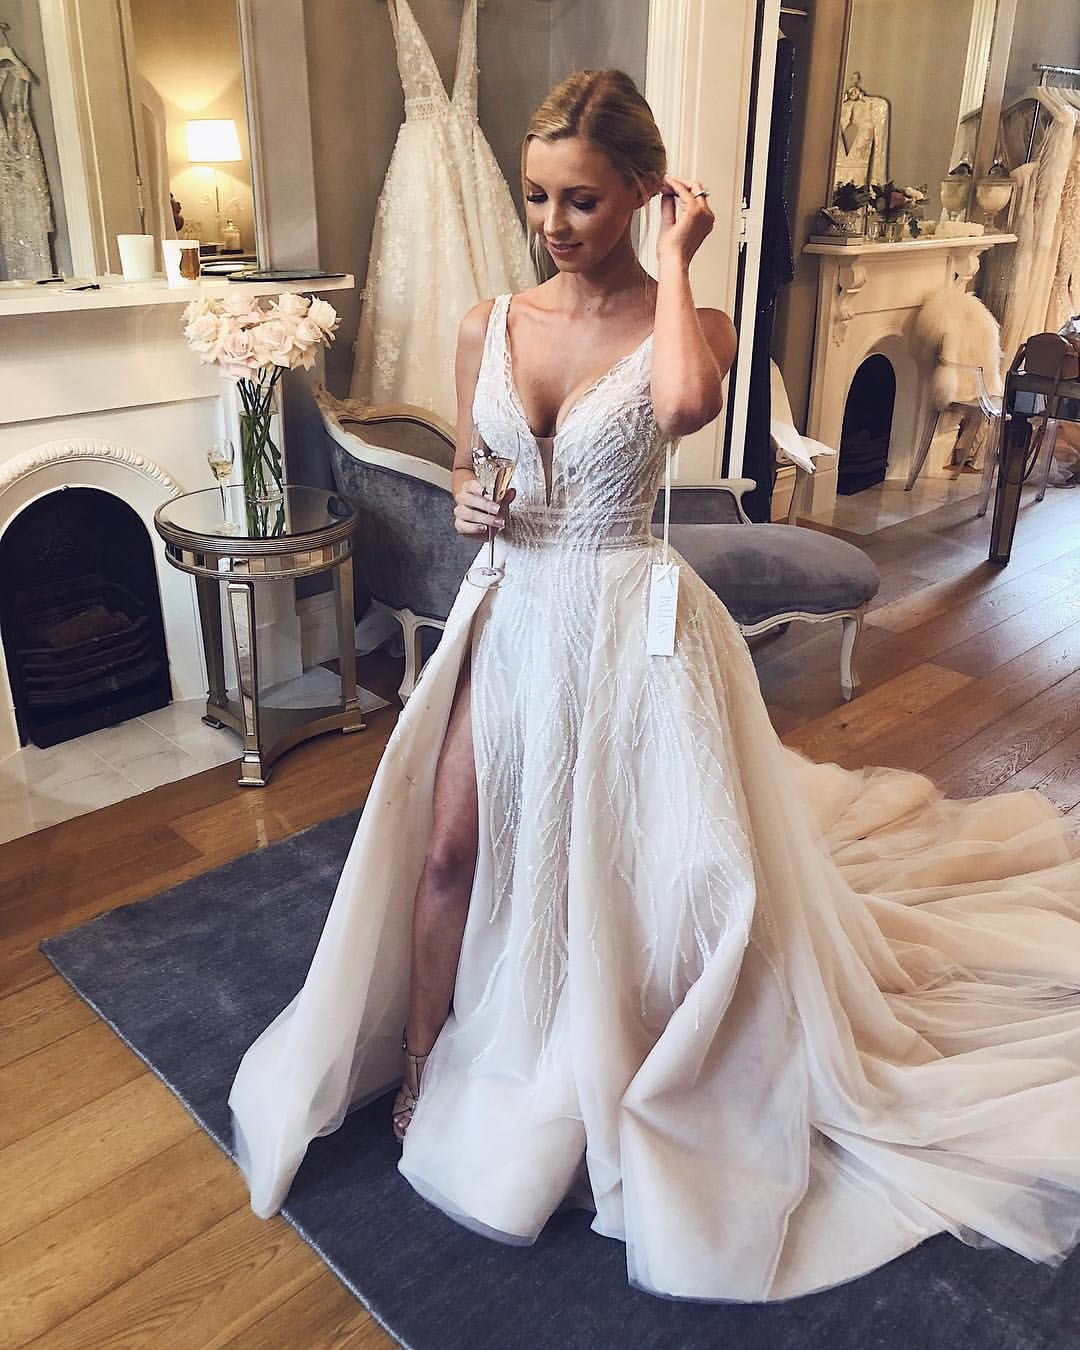 Pallas Couture Sur Instagram Beautiful Hannah At Her Final Fitting In Pallas Haute Couture Hannah Wedding Dress Overskirt Wedding Dresses Buy Wedding Dress